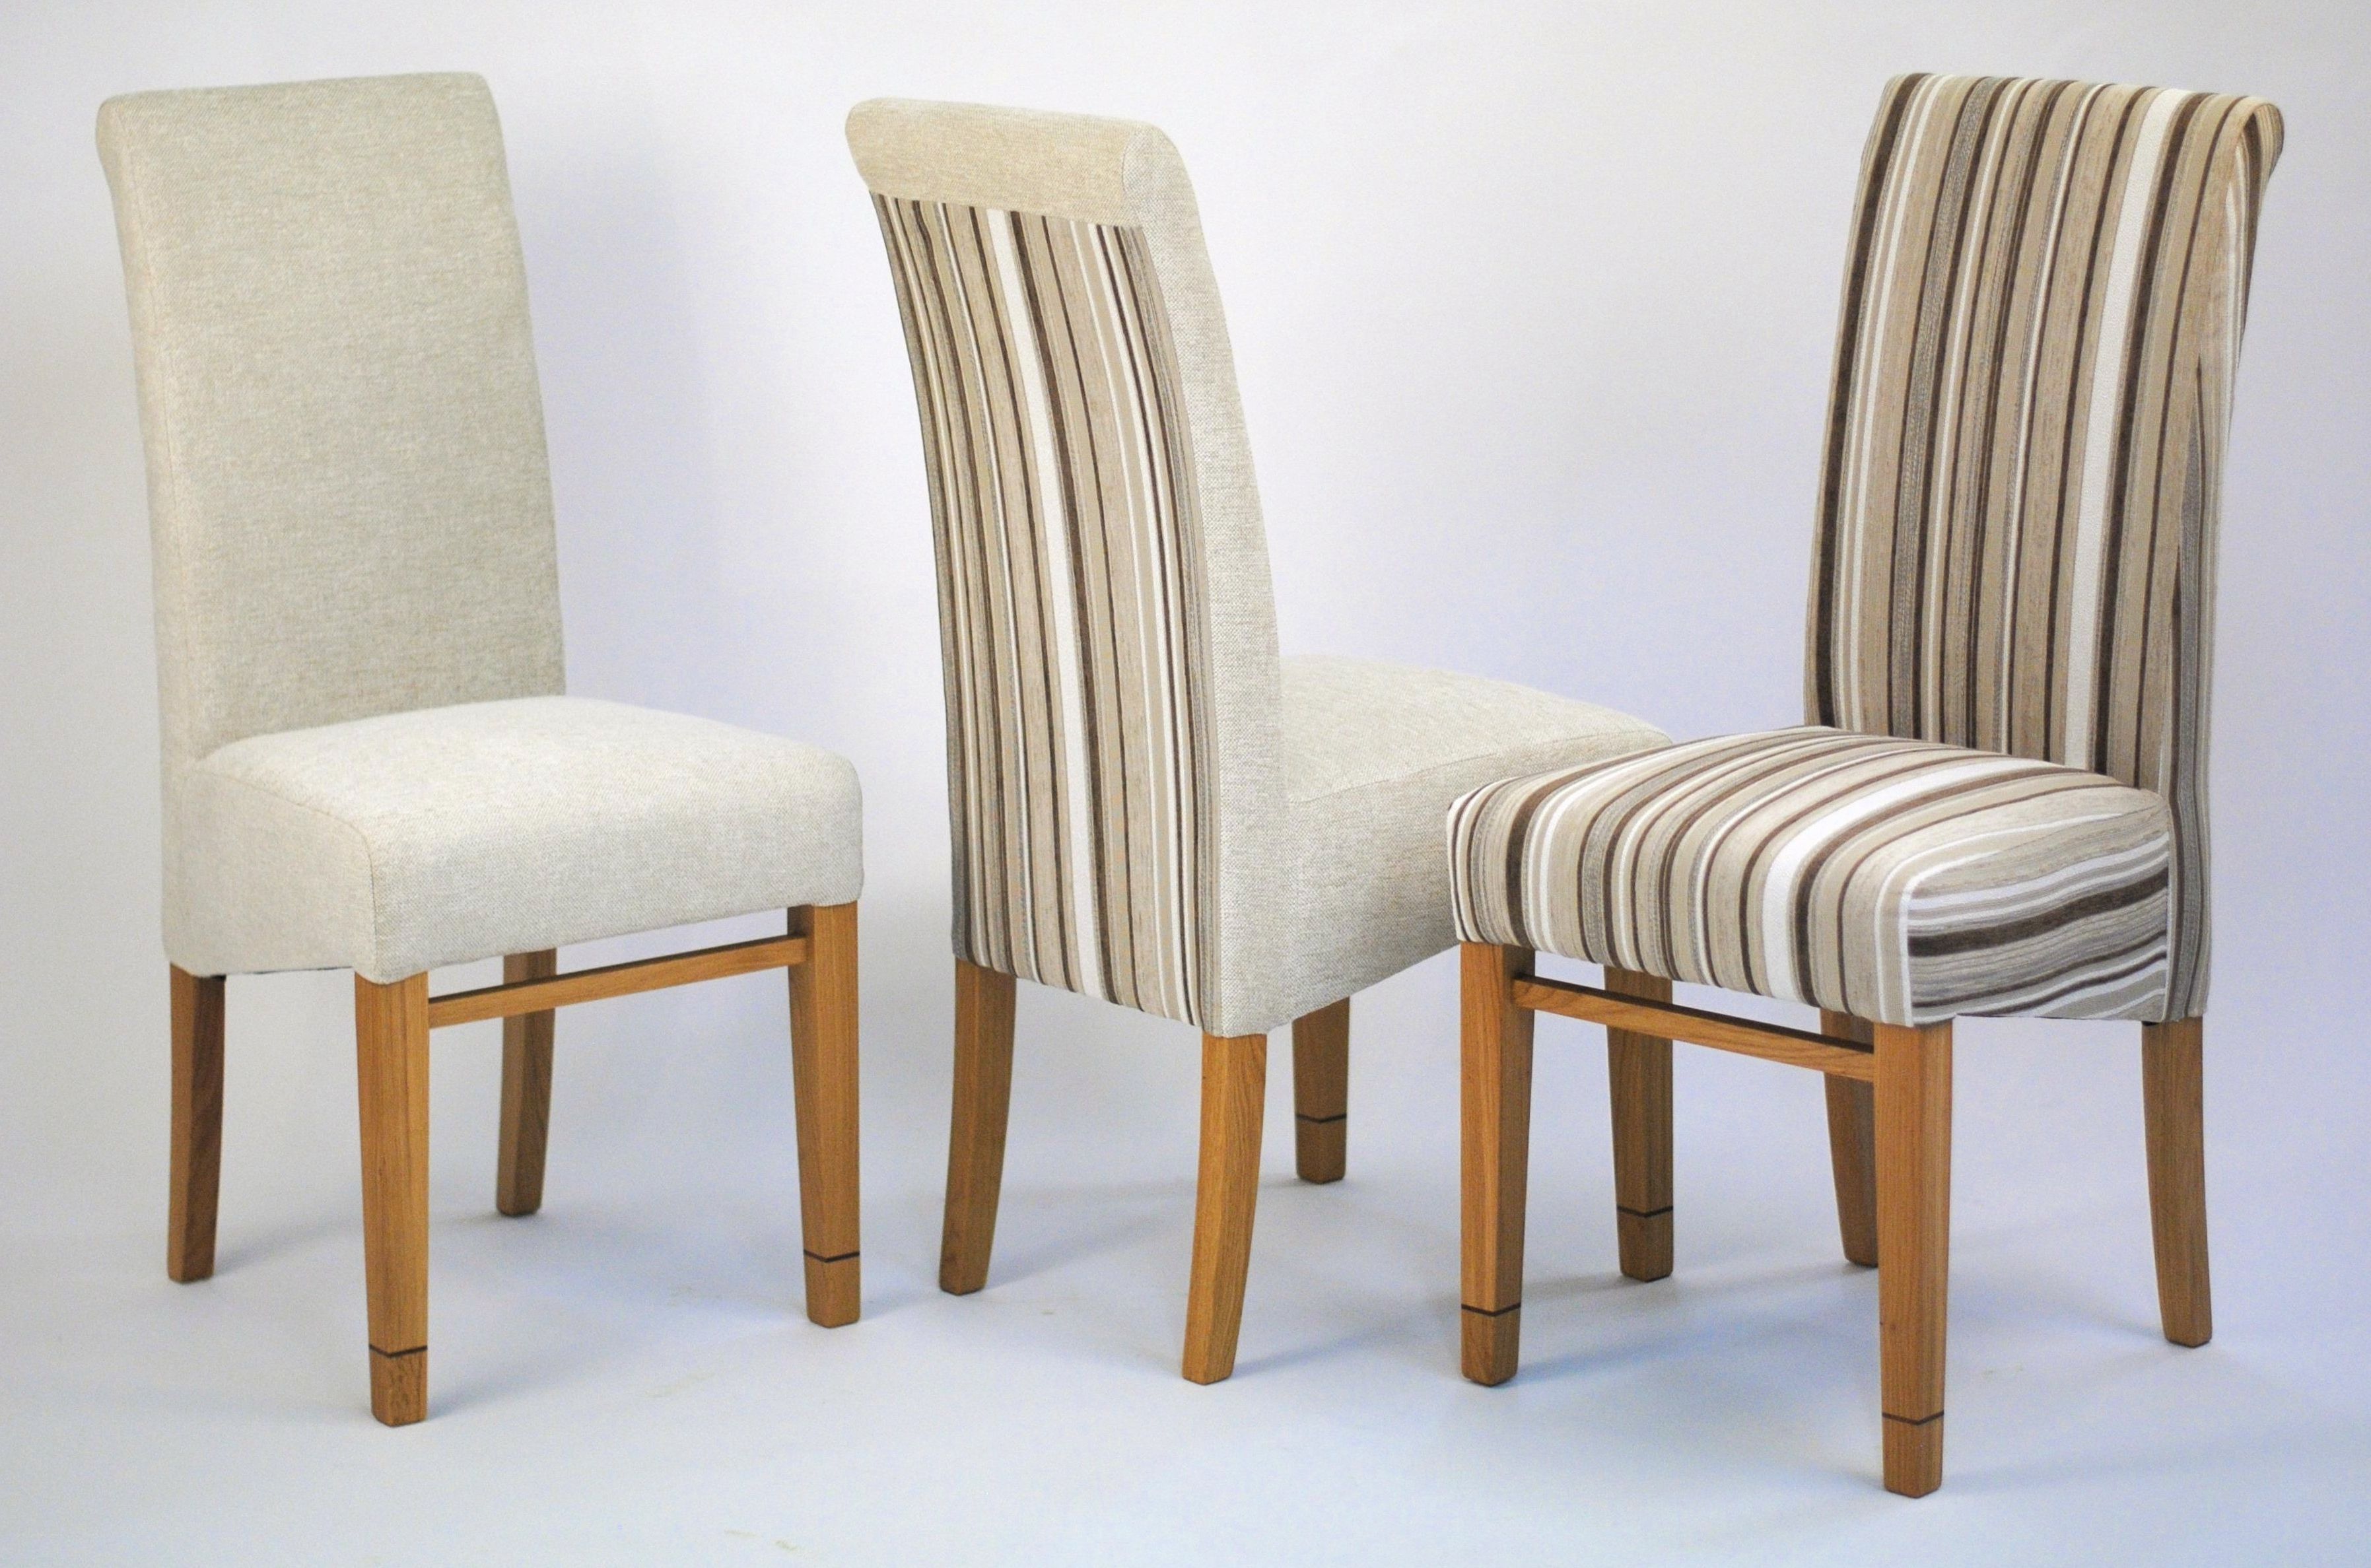 Dining Chairs regarding Widely used Upholstered Dining Chair - Tanner Furniture Designs